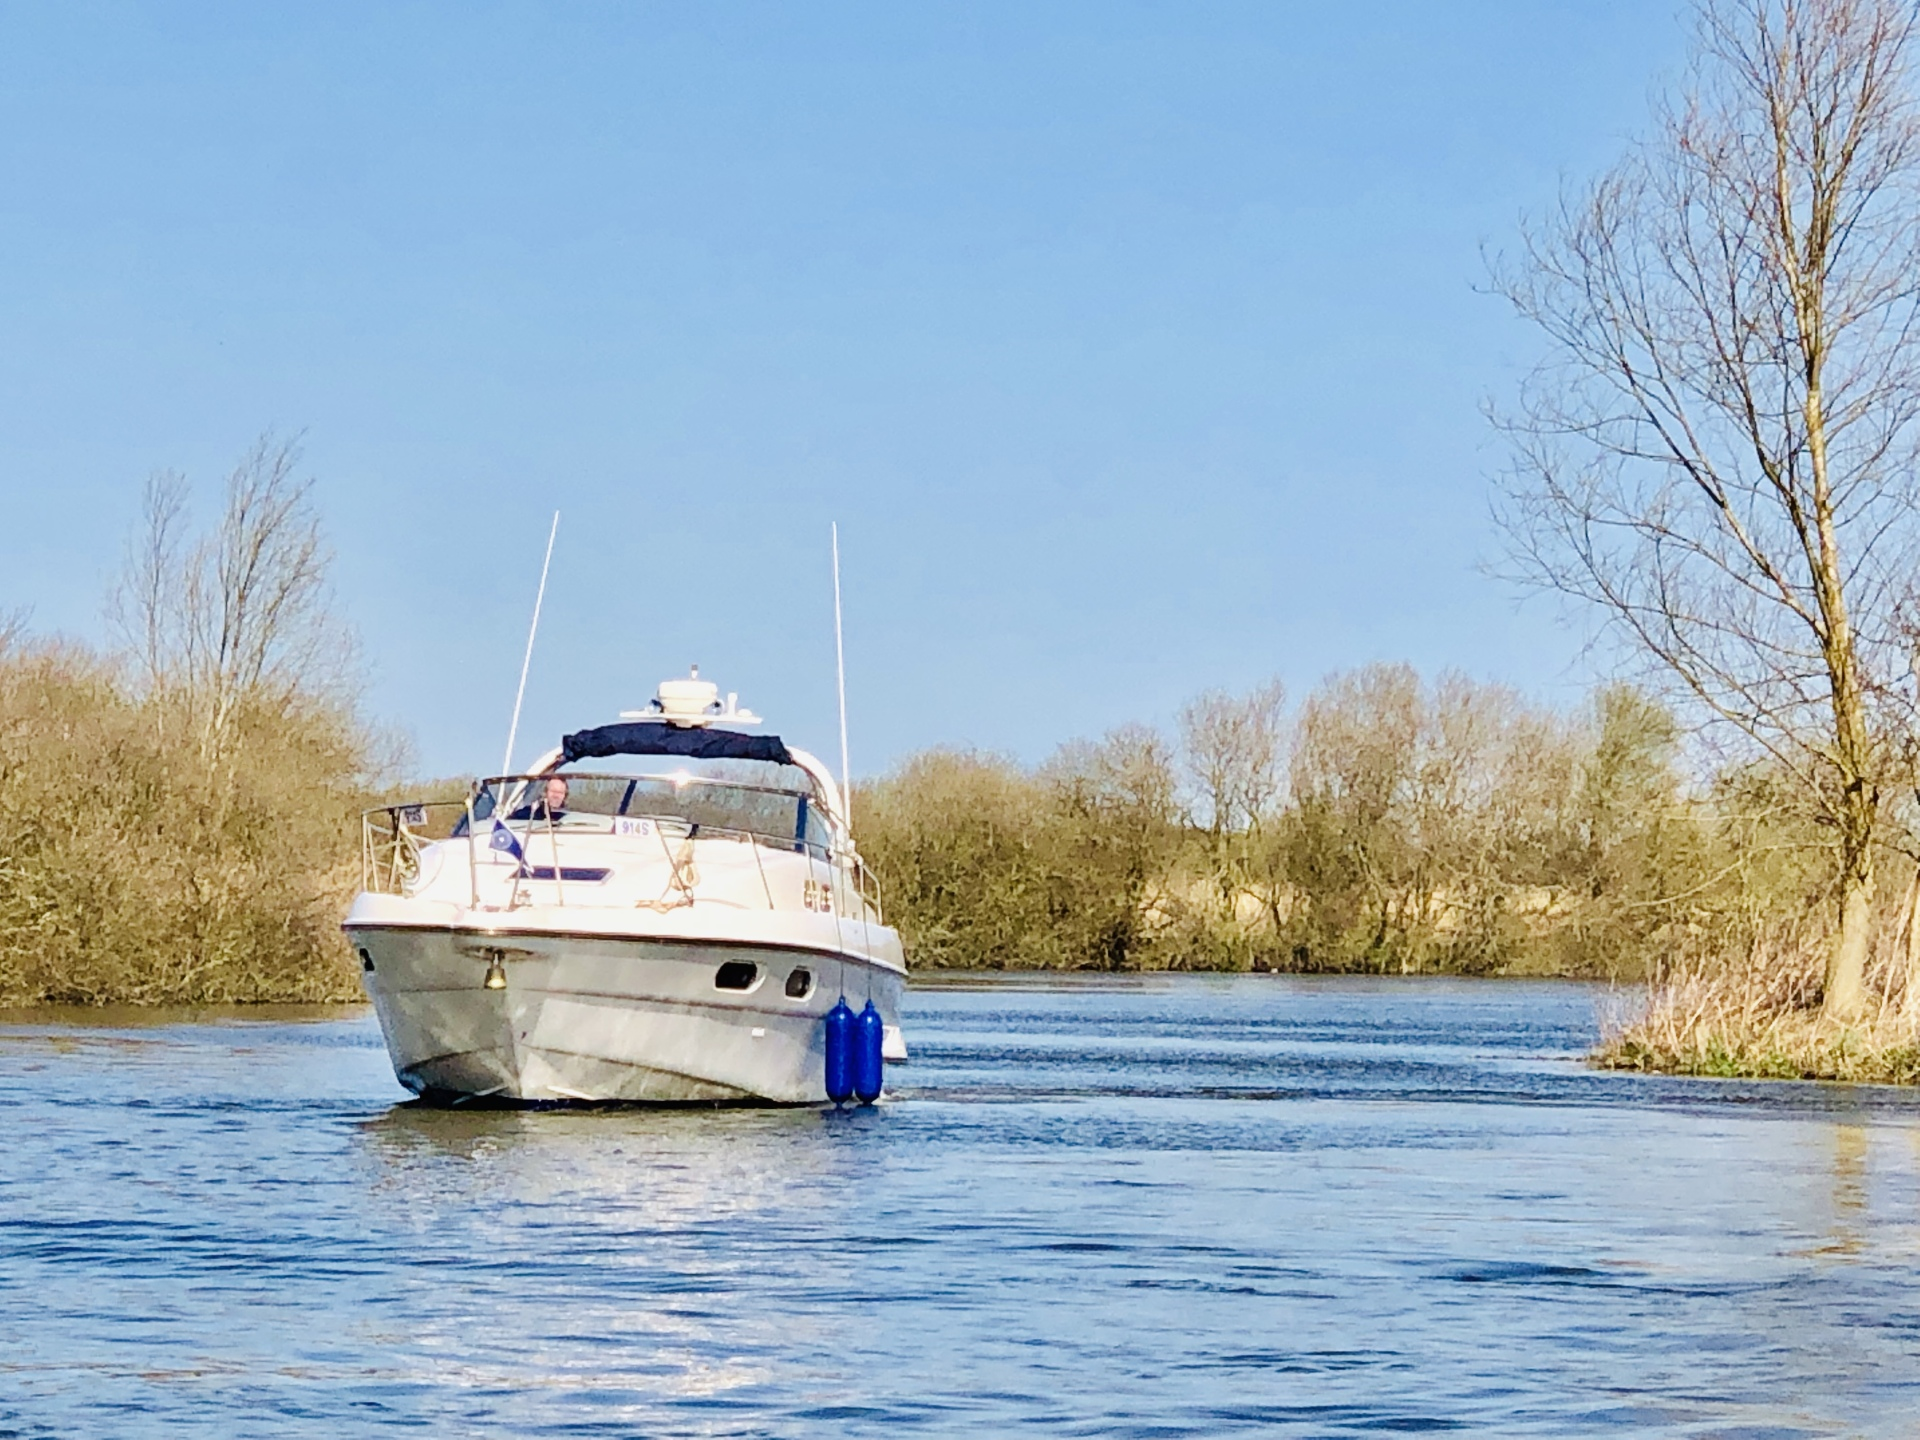 Norfolk Broads, Horning, Norfolk Time, Charter Boat, Day Boat Hire, River Trip, Wroxham, Boat Trips, Day boat, VisitNorfolk, VisitNorwich, Norwich